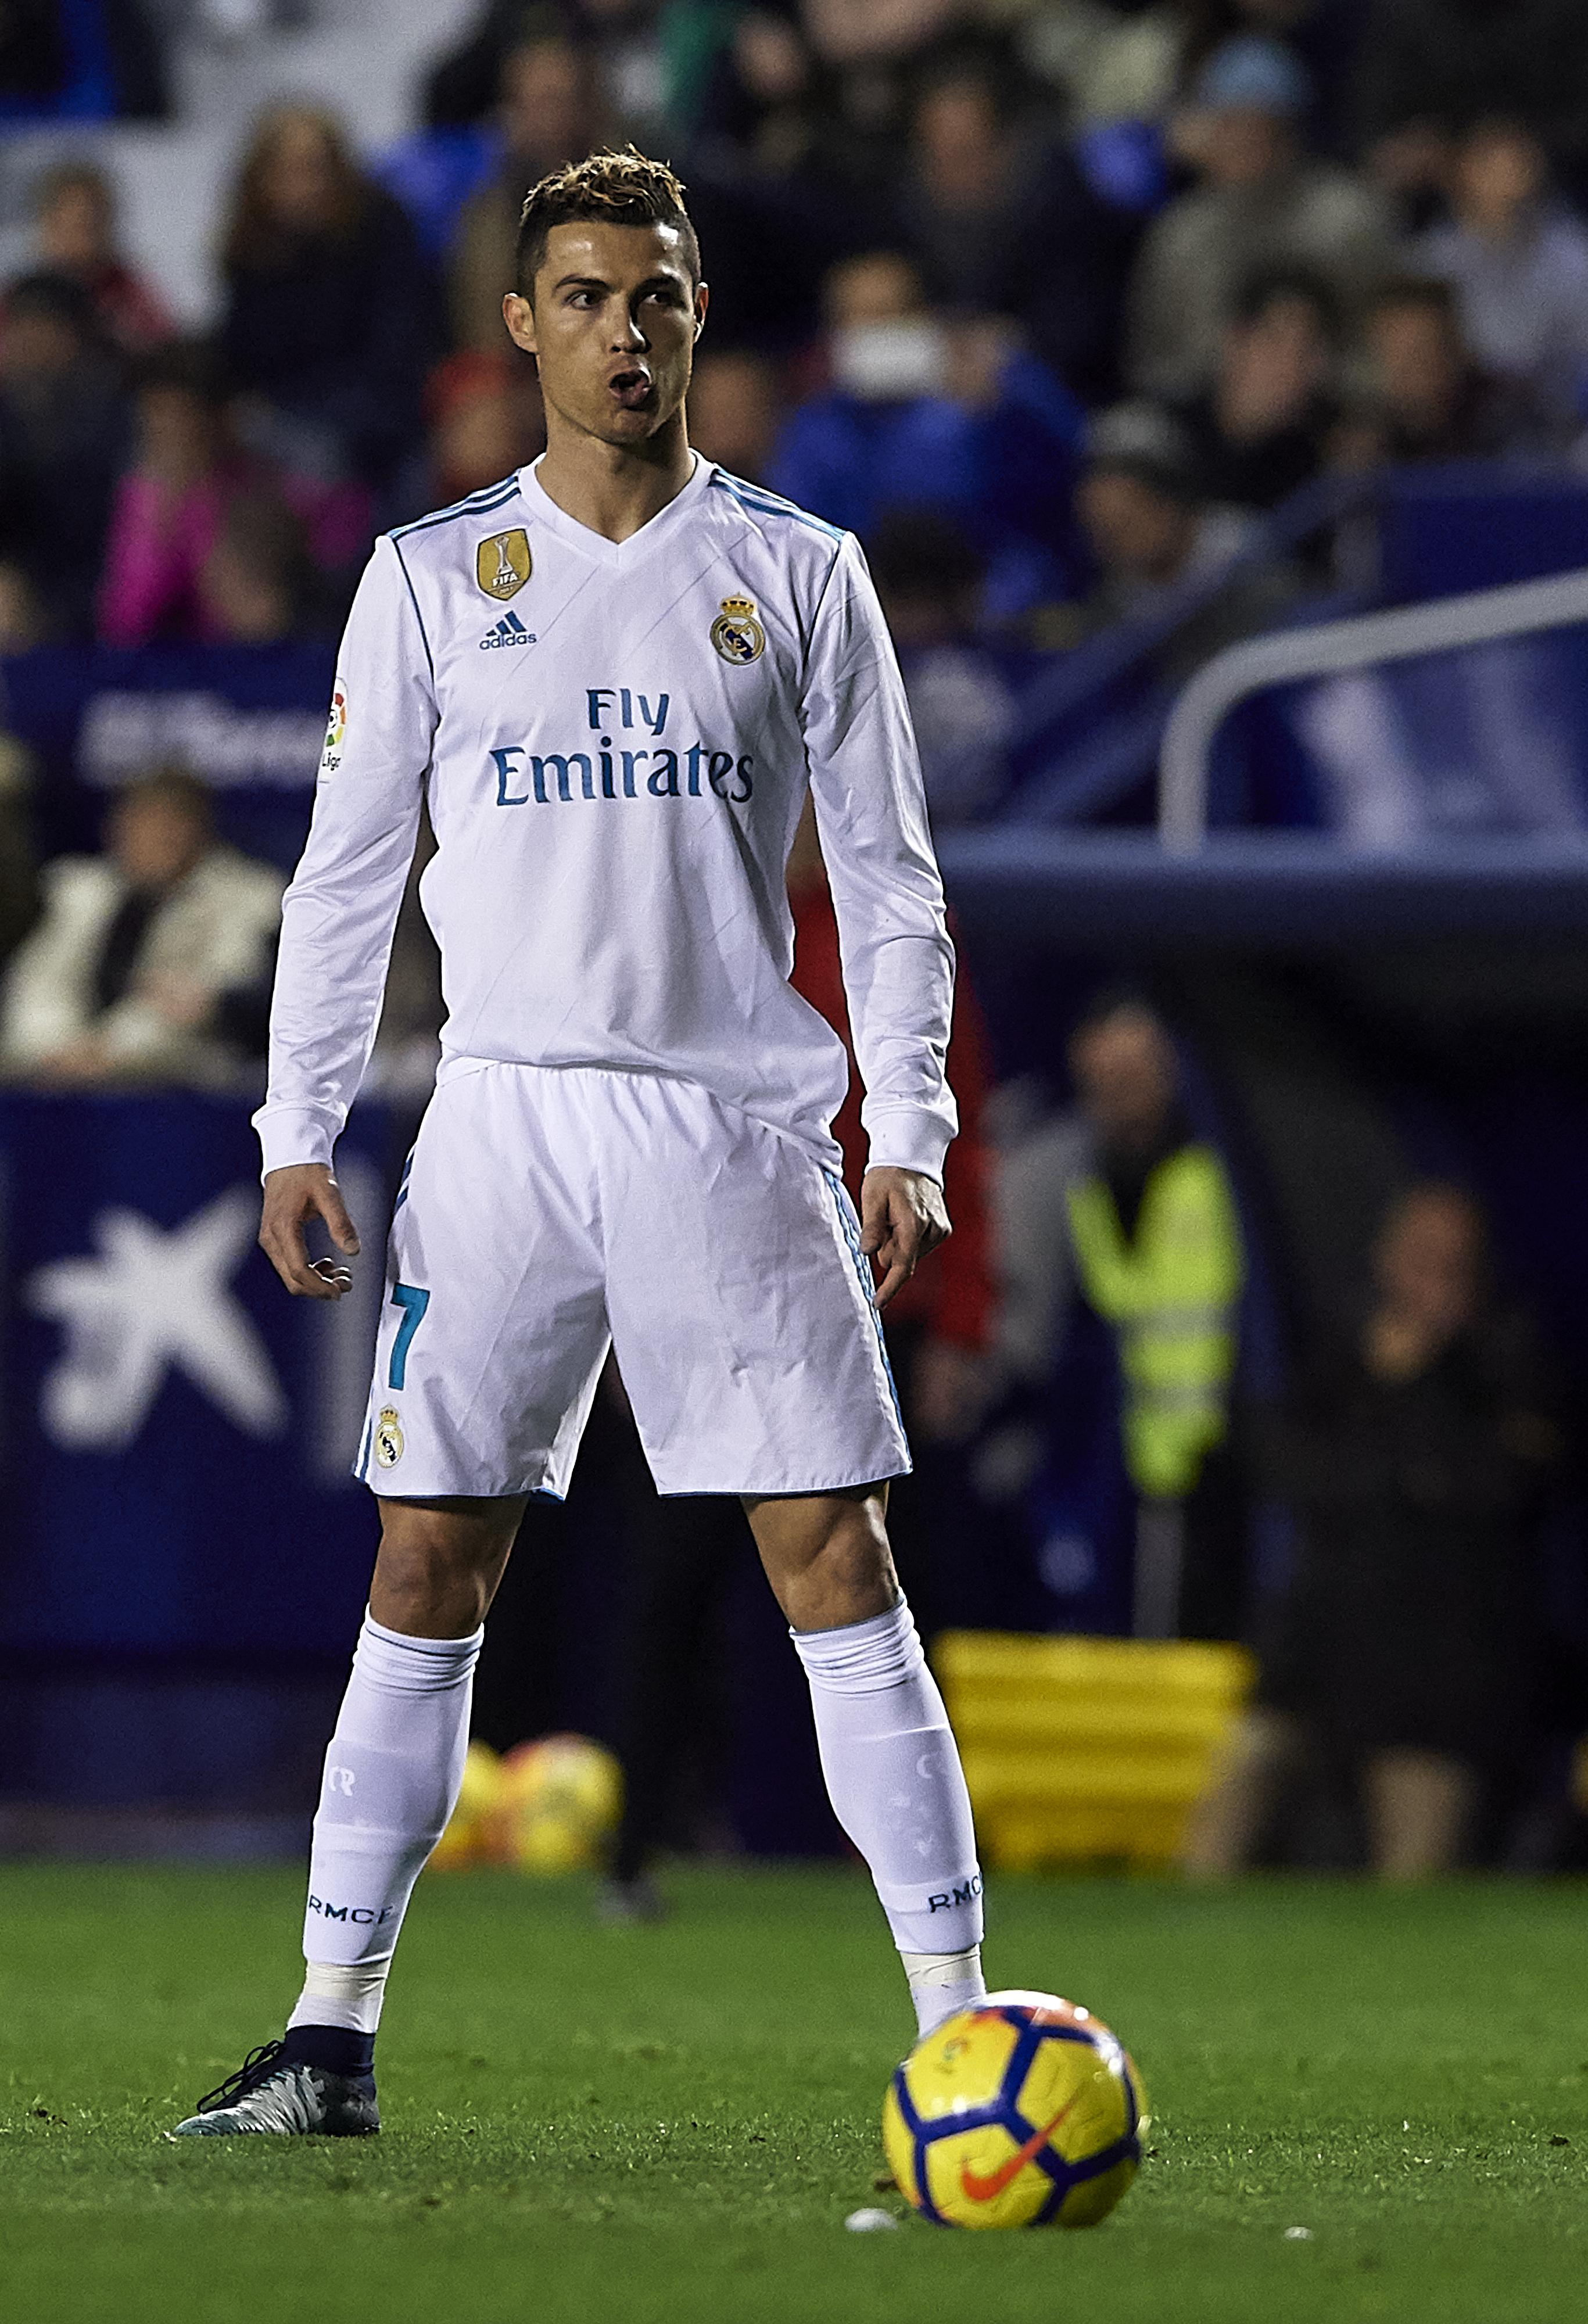 And of course, there's the famous Ronaldo stance